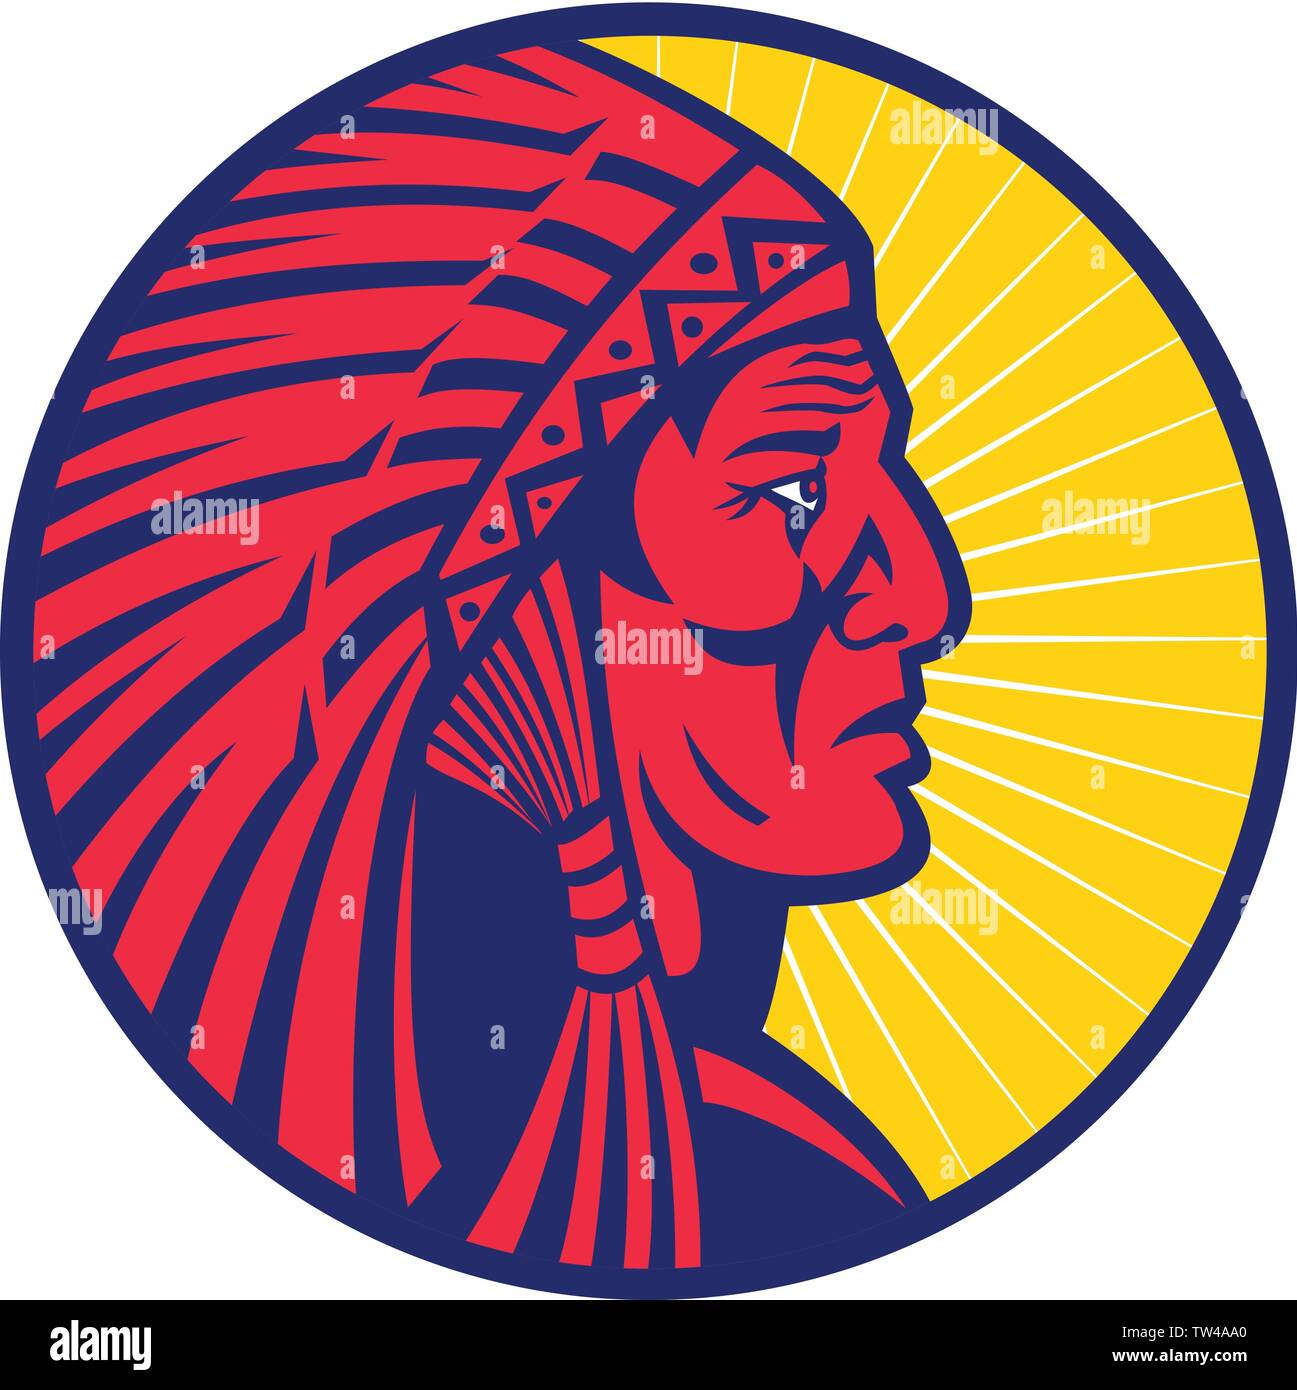 Mascot icon illustration of head of an old Native American Indian chief wearing feather headdress or war bonnet viewed from side set inside circle on - Stock Image